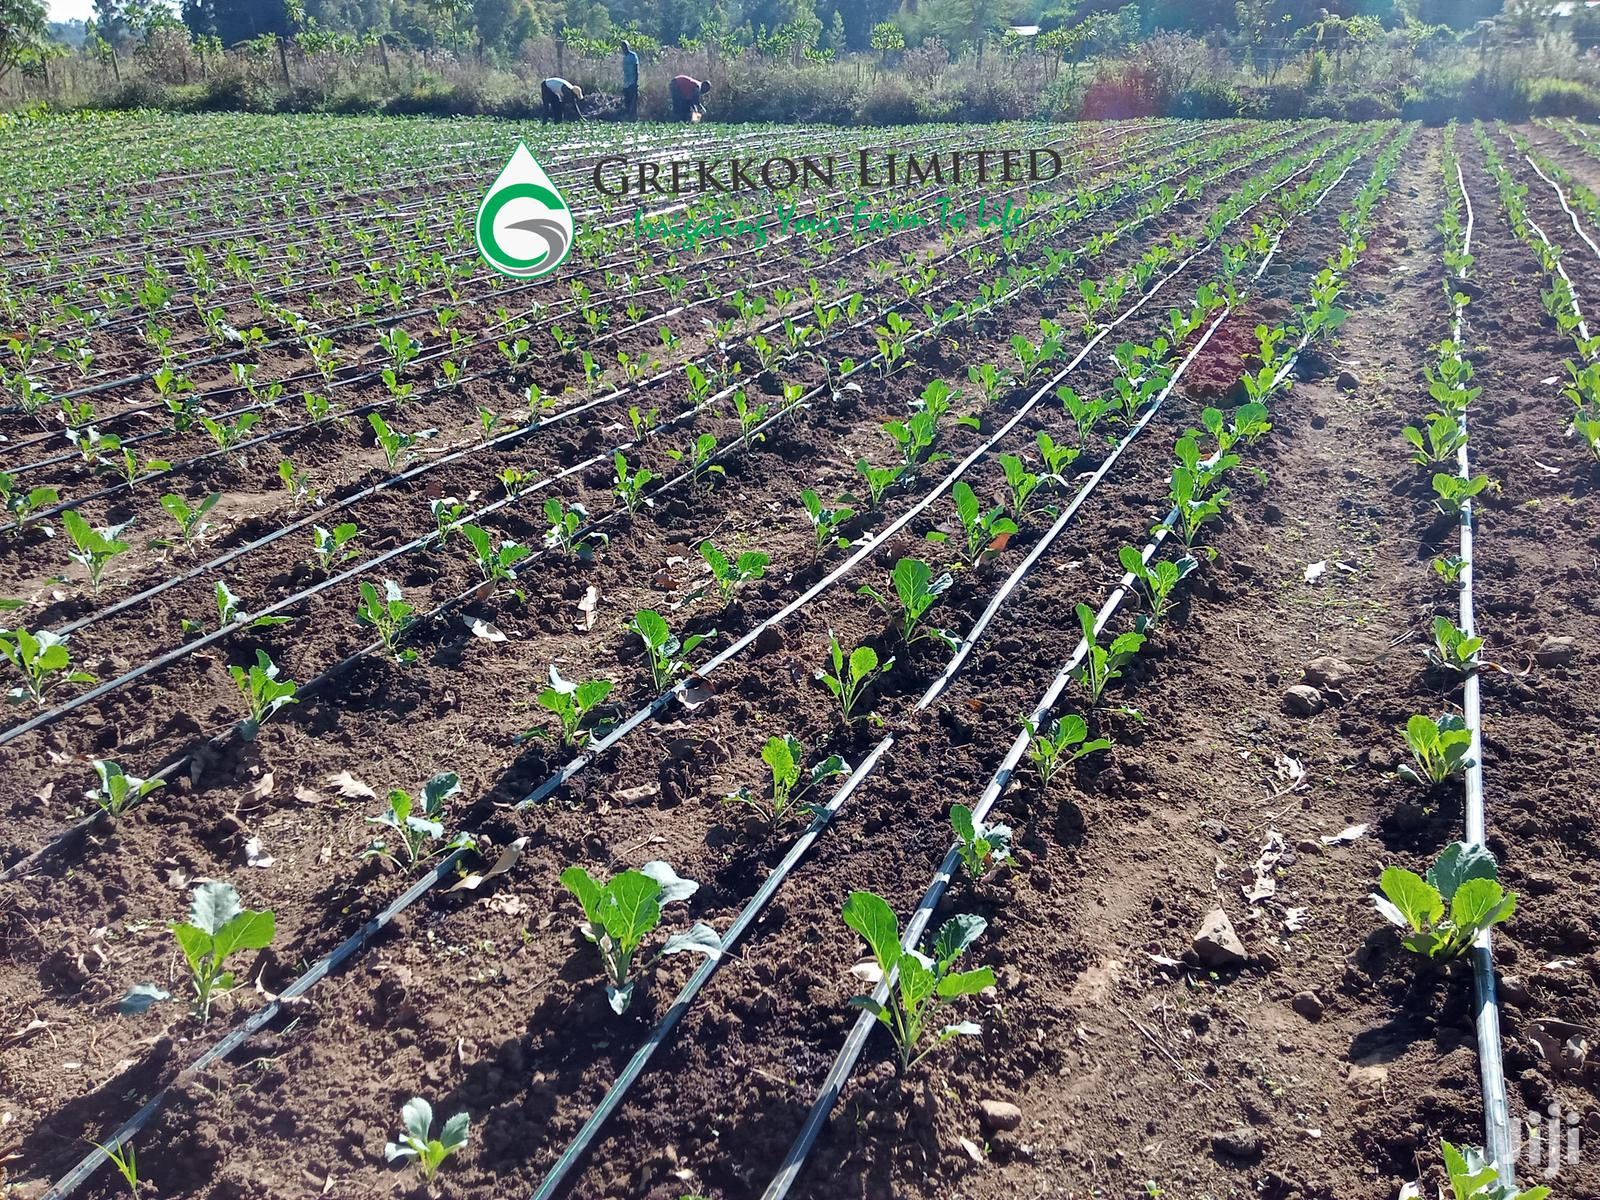 Affordable Drip Irrigation Kits For Eighth 1/8 Acre Plots/Farms